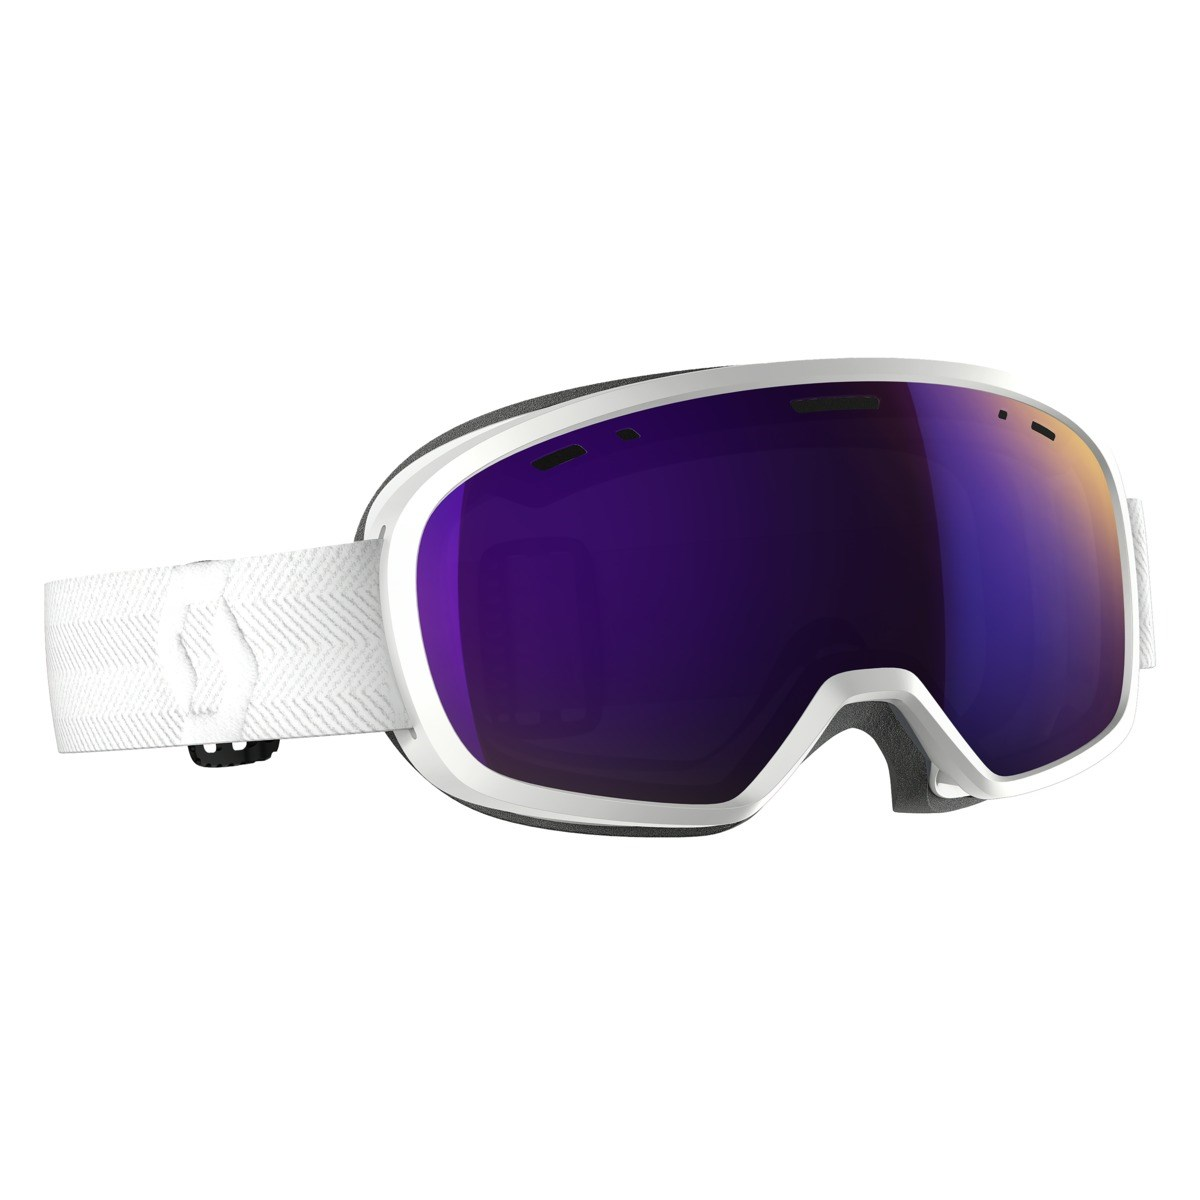 1044b2a8a808 Scott Buzz Pro Junior Goggle White   Amplifier Purple Chrome Lens. 0 (Be  the first to add a review!)